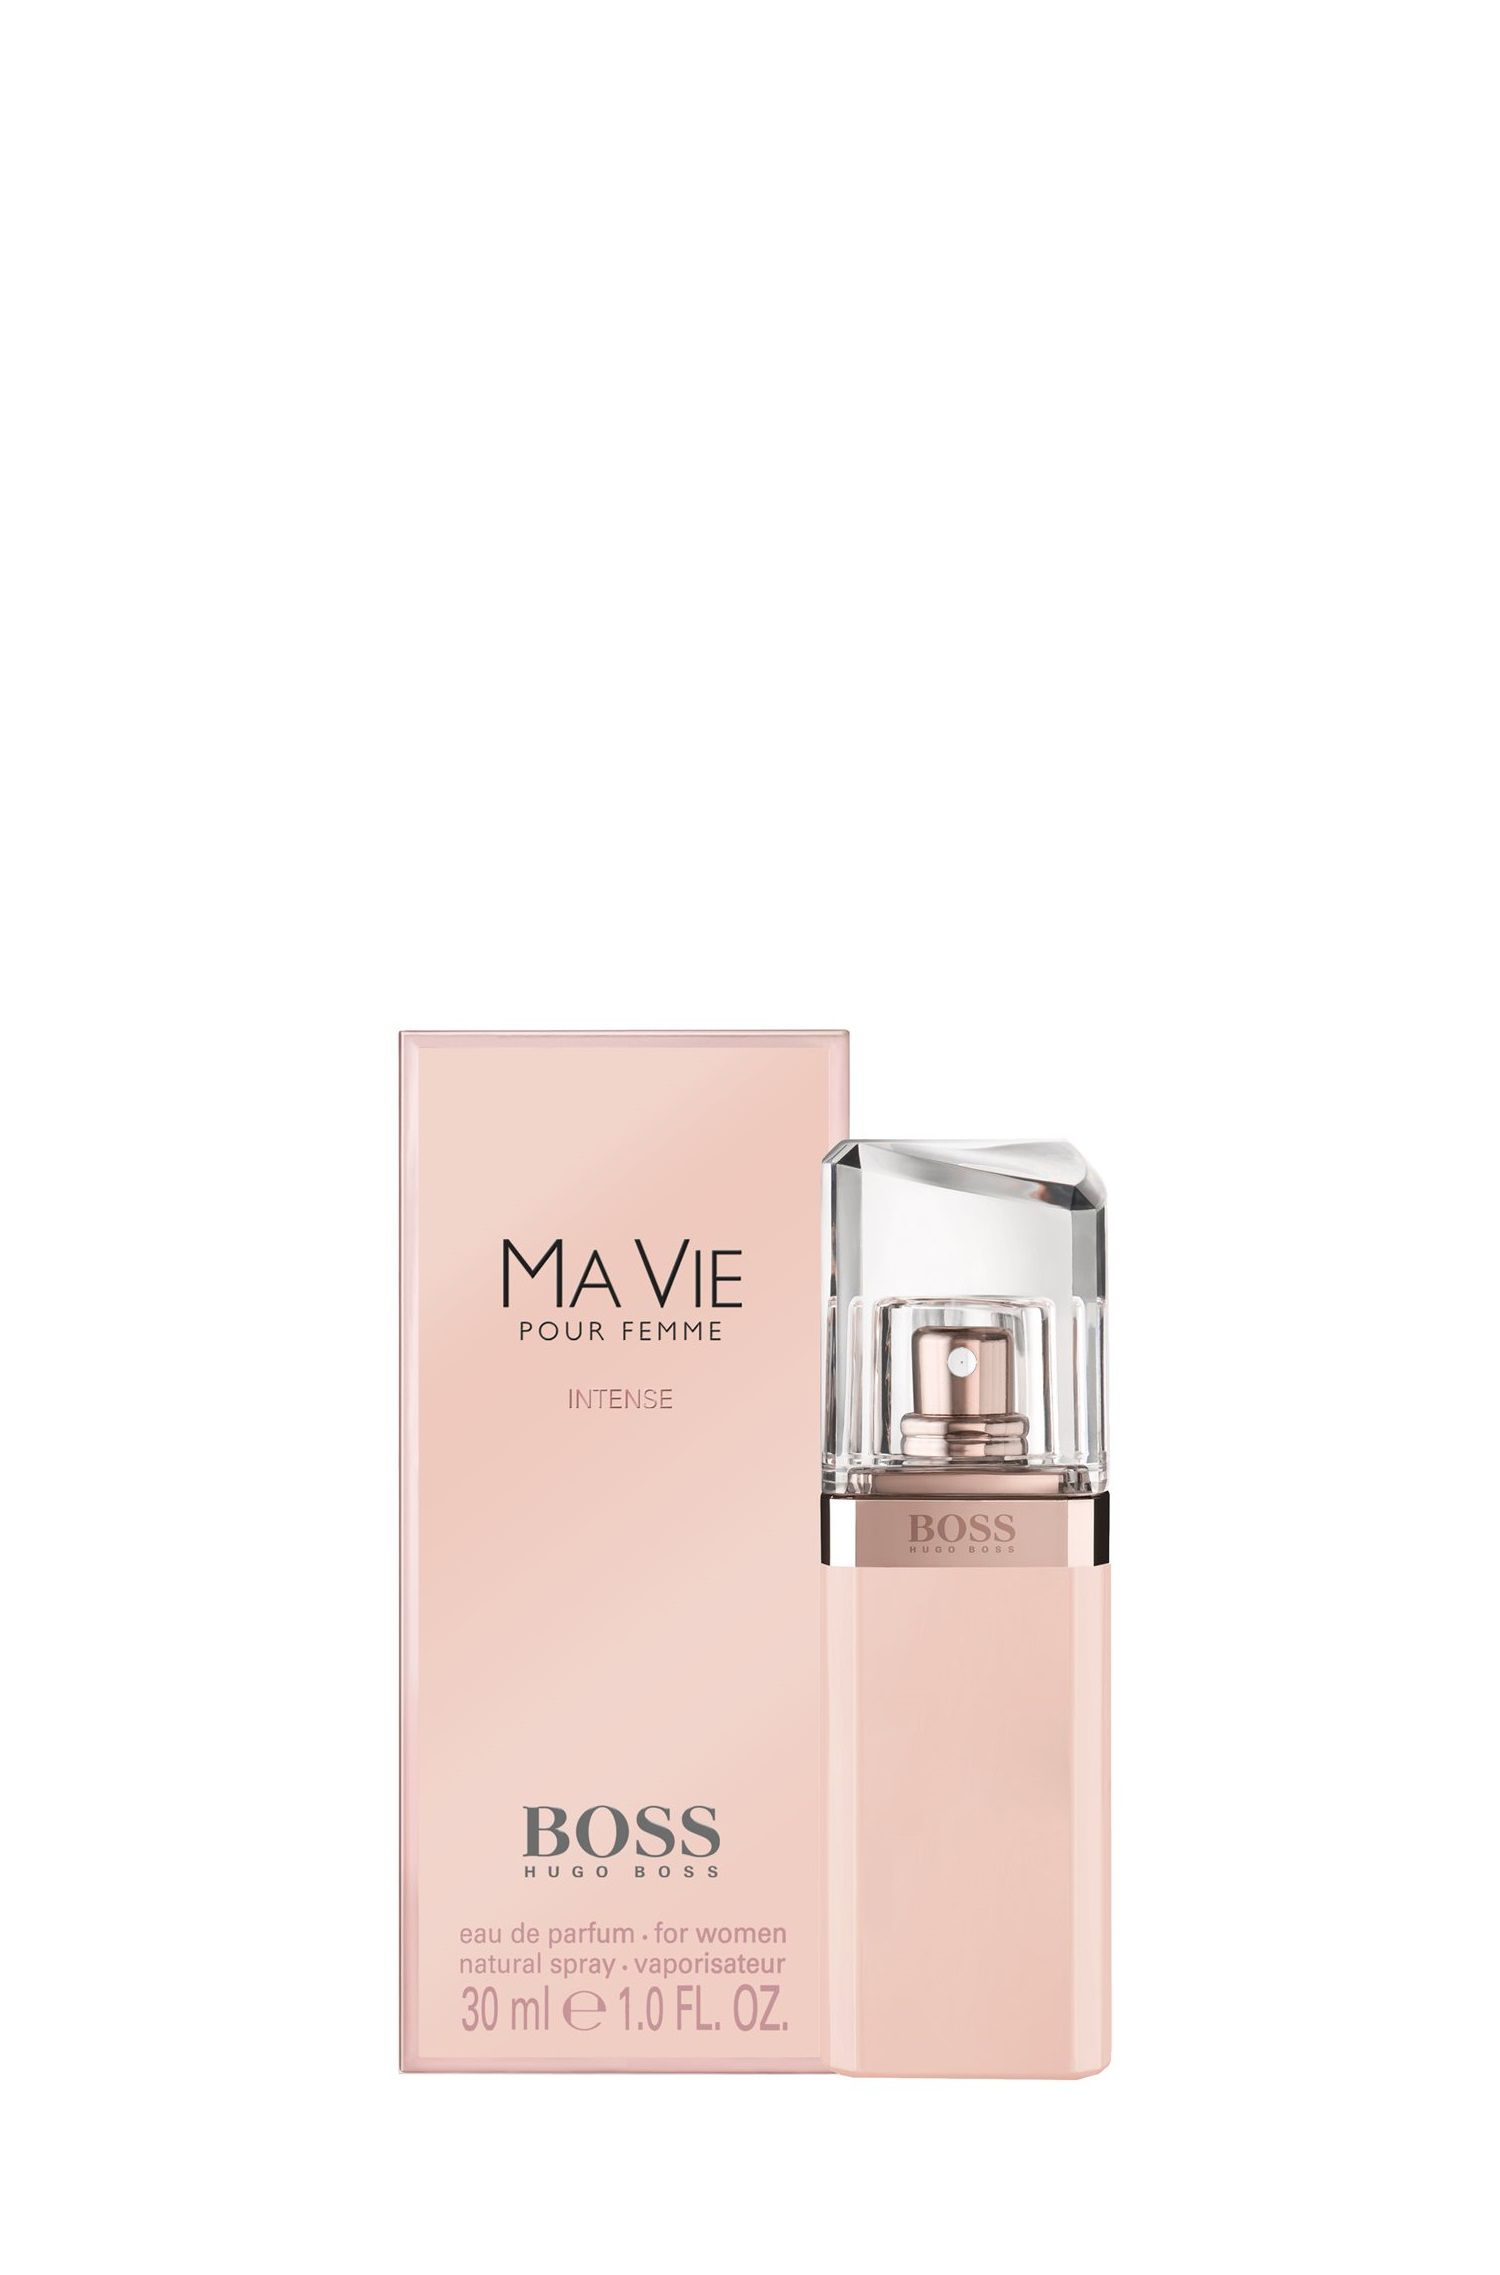 BOSS Ma Vie Intense eau de parfum 30 ml, Assorted-Pre-Pack